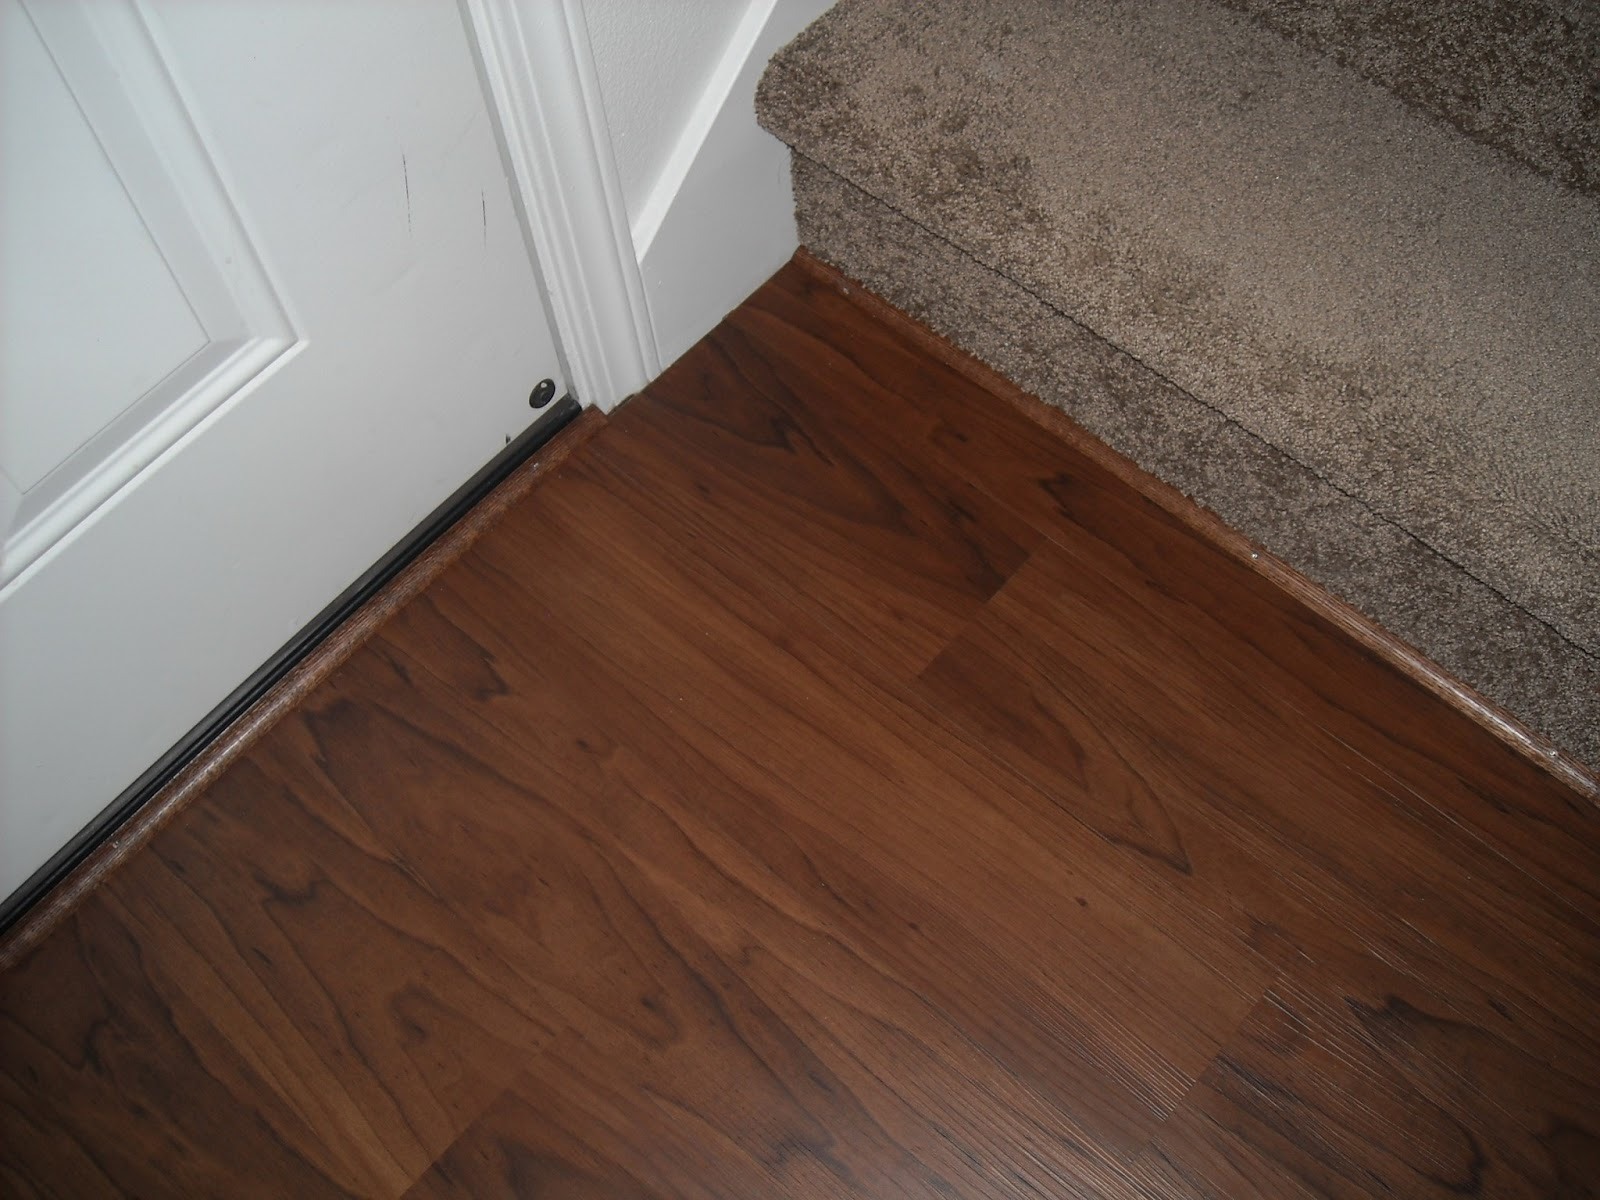 Lds mom to many allure trafficmaster floor transition for Allure flooring